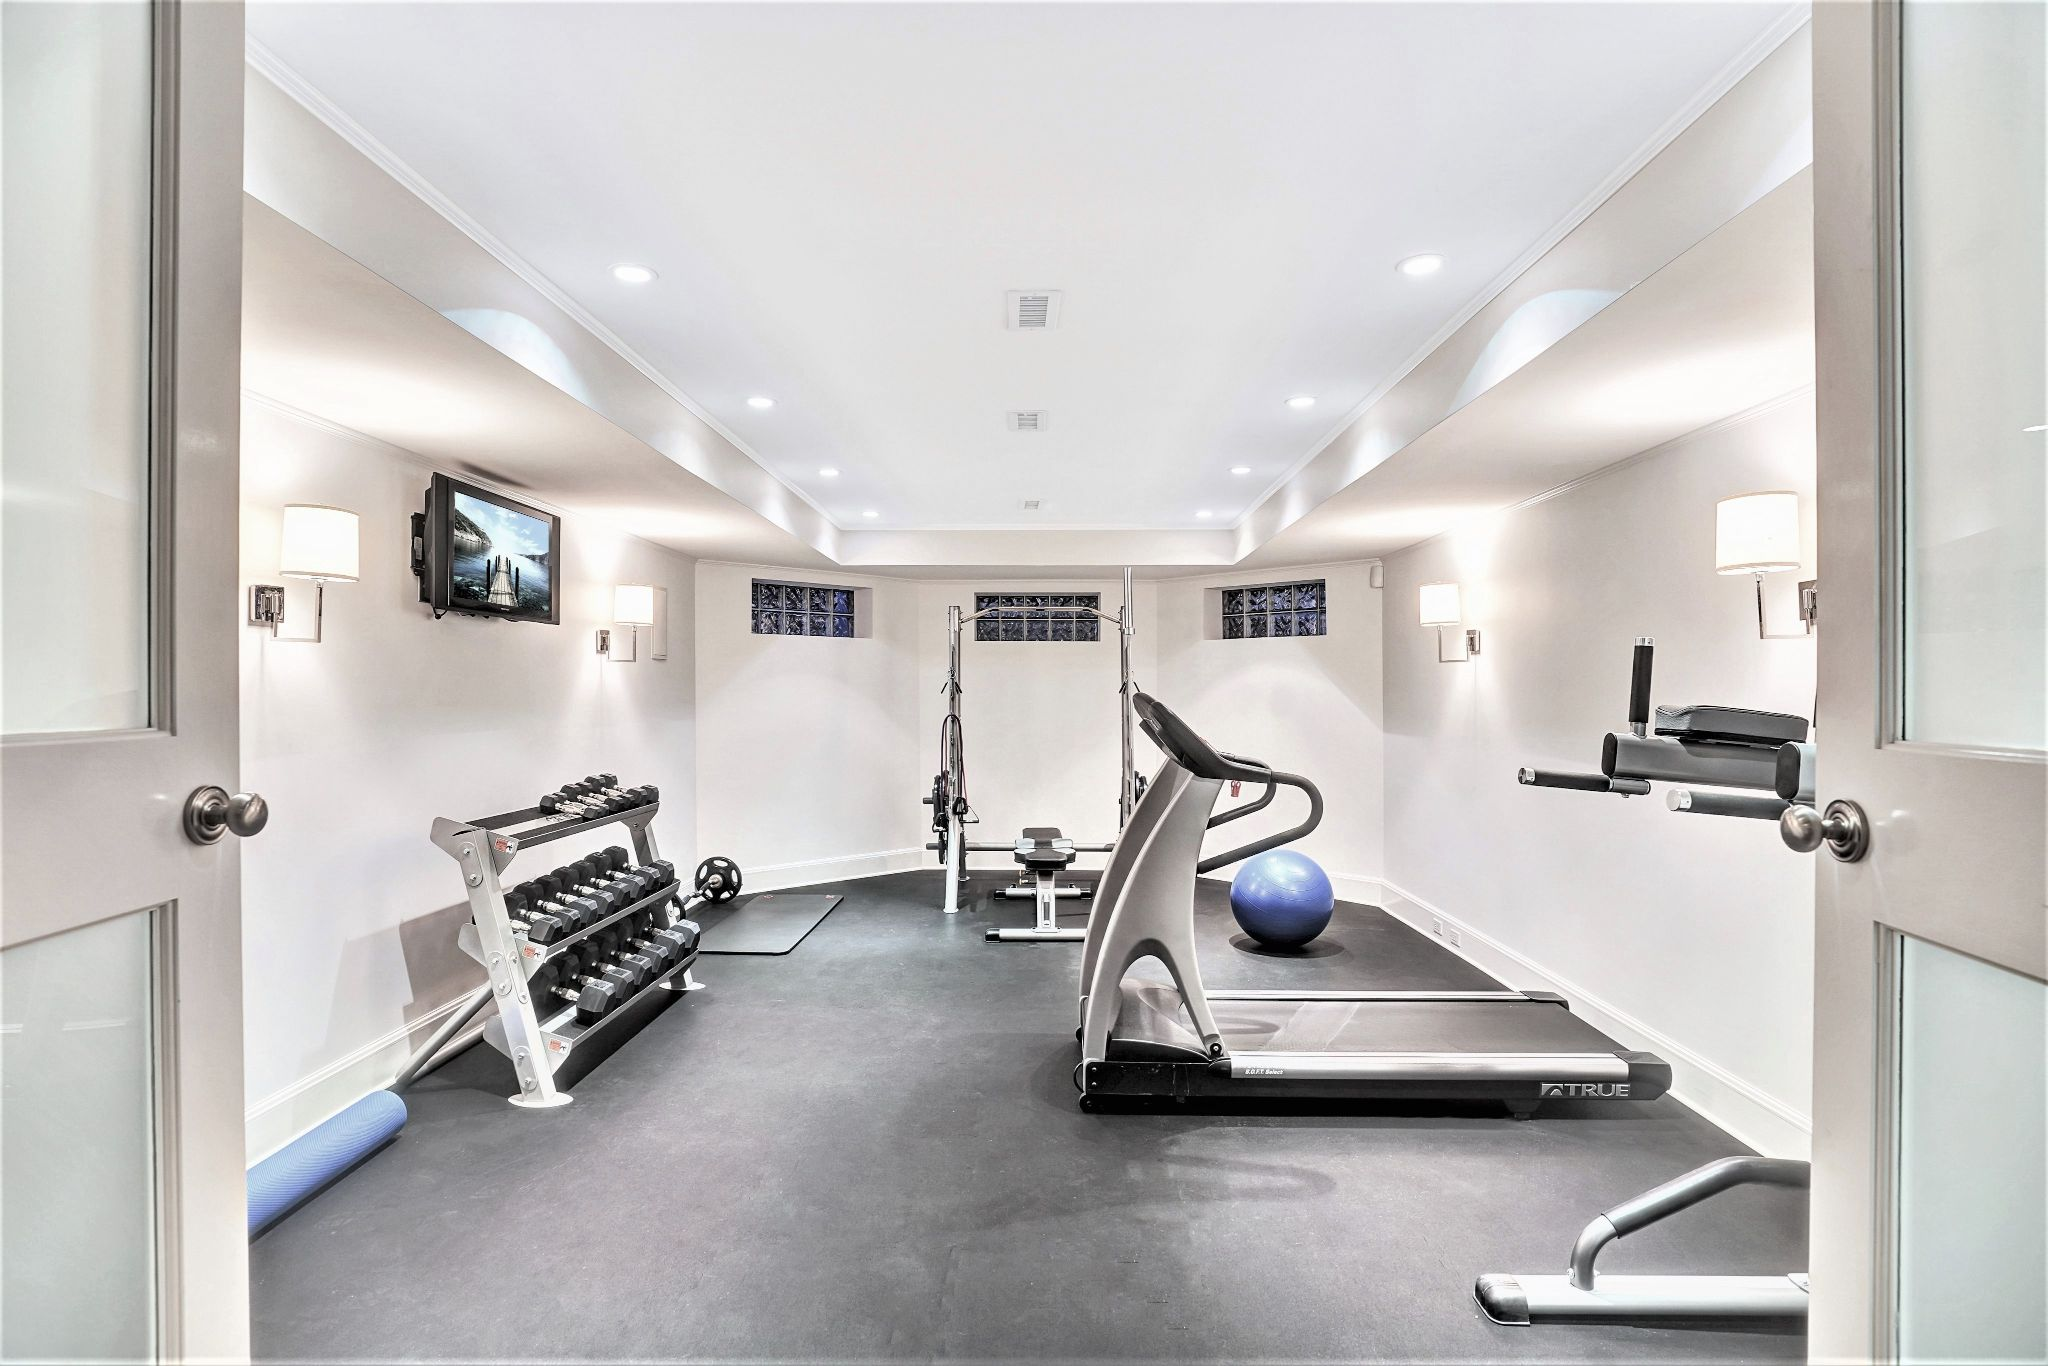 18 Joanna Way - Exercise Room